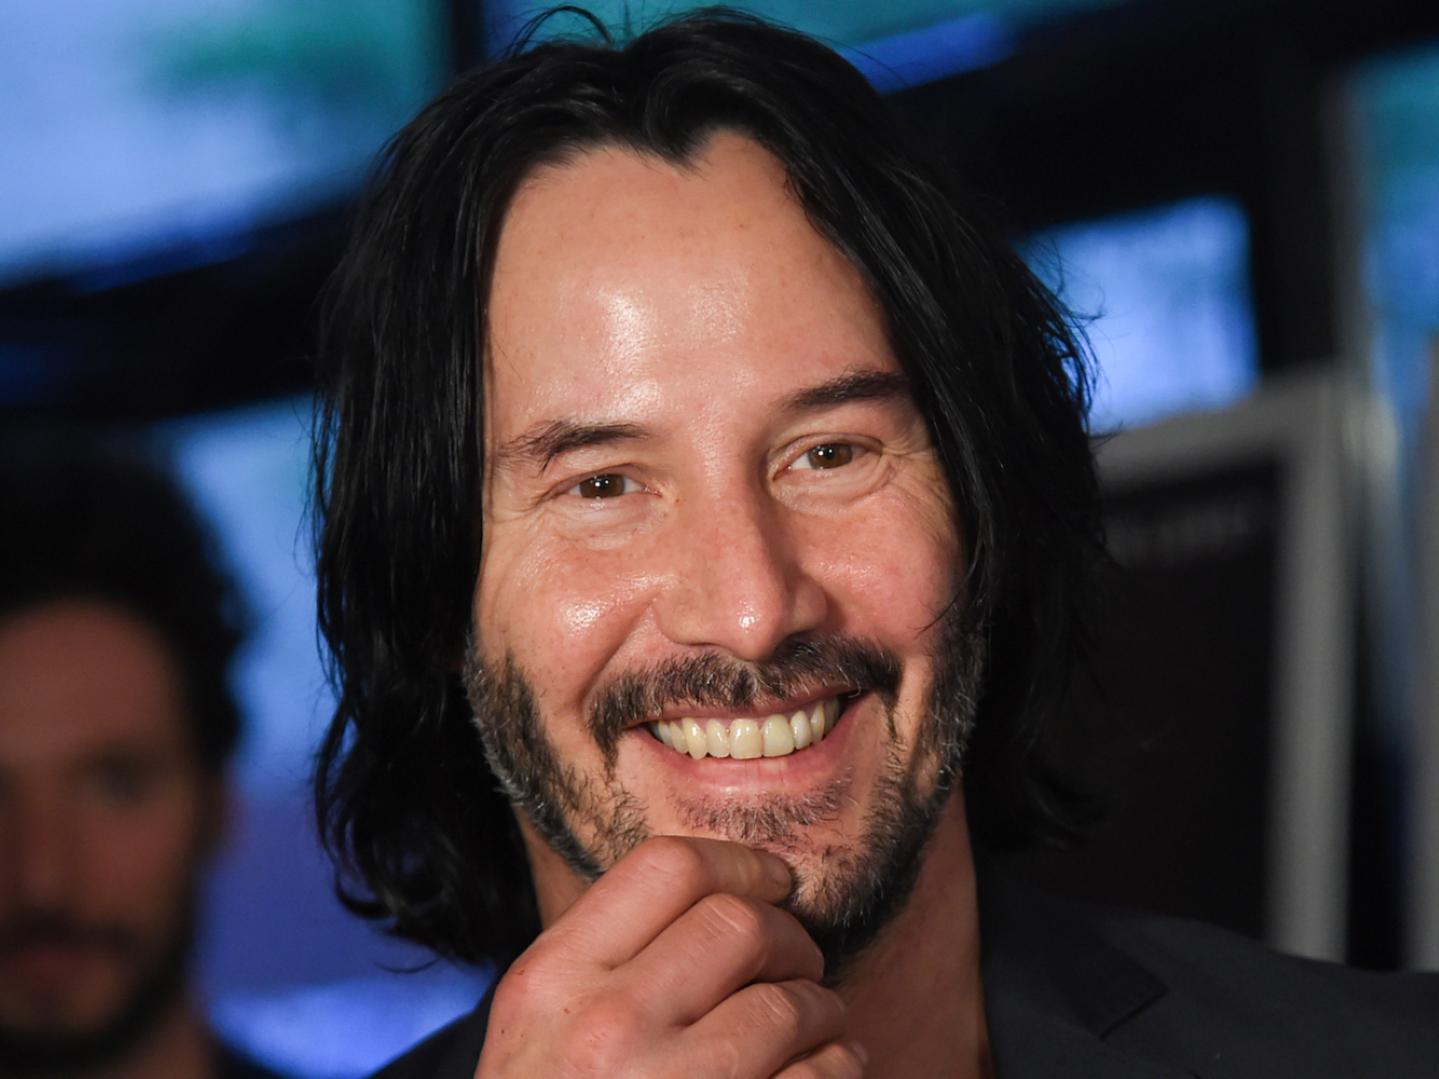 Keanu Reeves Saw A Fan Left An Adorable Sign For Him On His Way To Set And The Actor Jumped Out Of The Car To Autograph Keanu Reeves Ted Movie